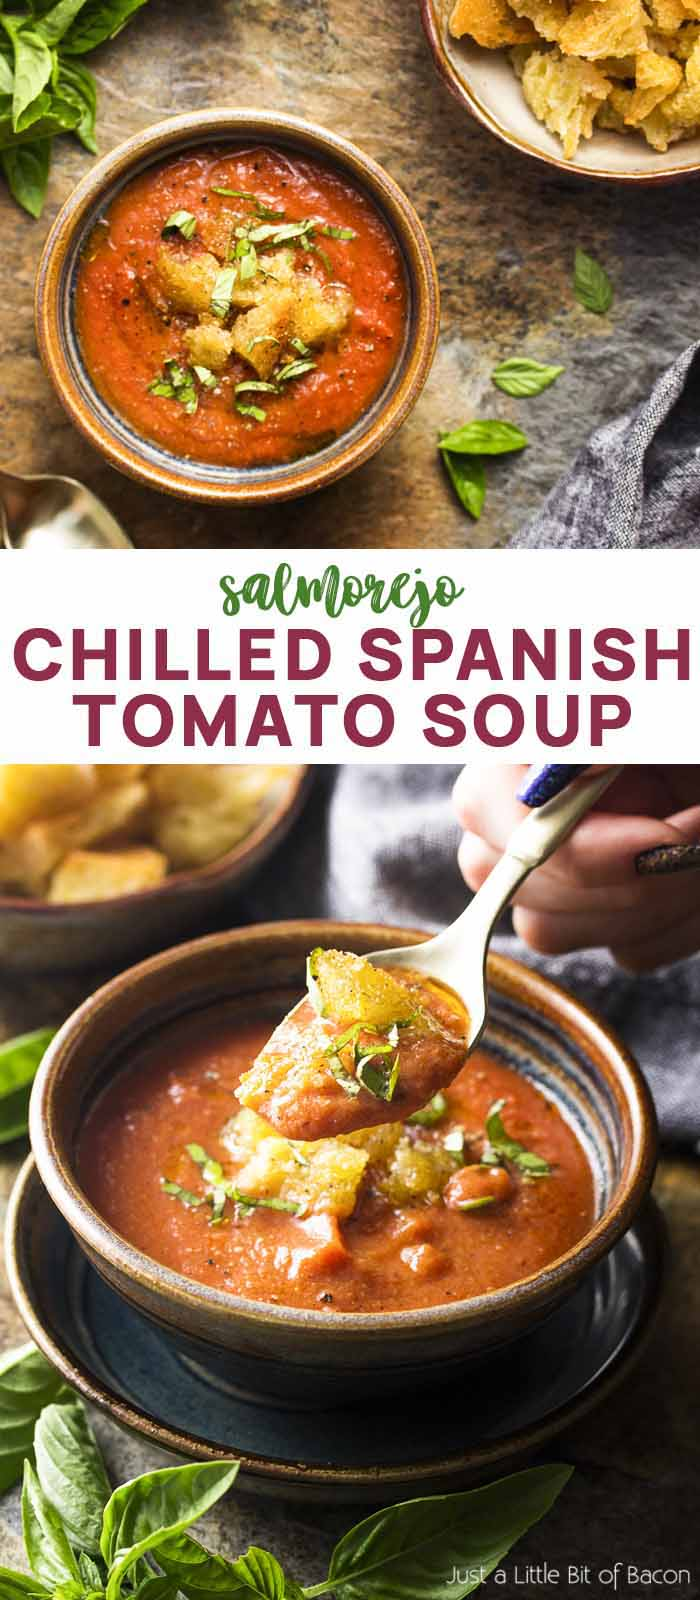 Two views of a bowl of soup with text overlay - Chilled Spanish Tomato Soup.